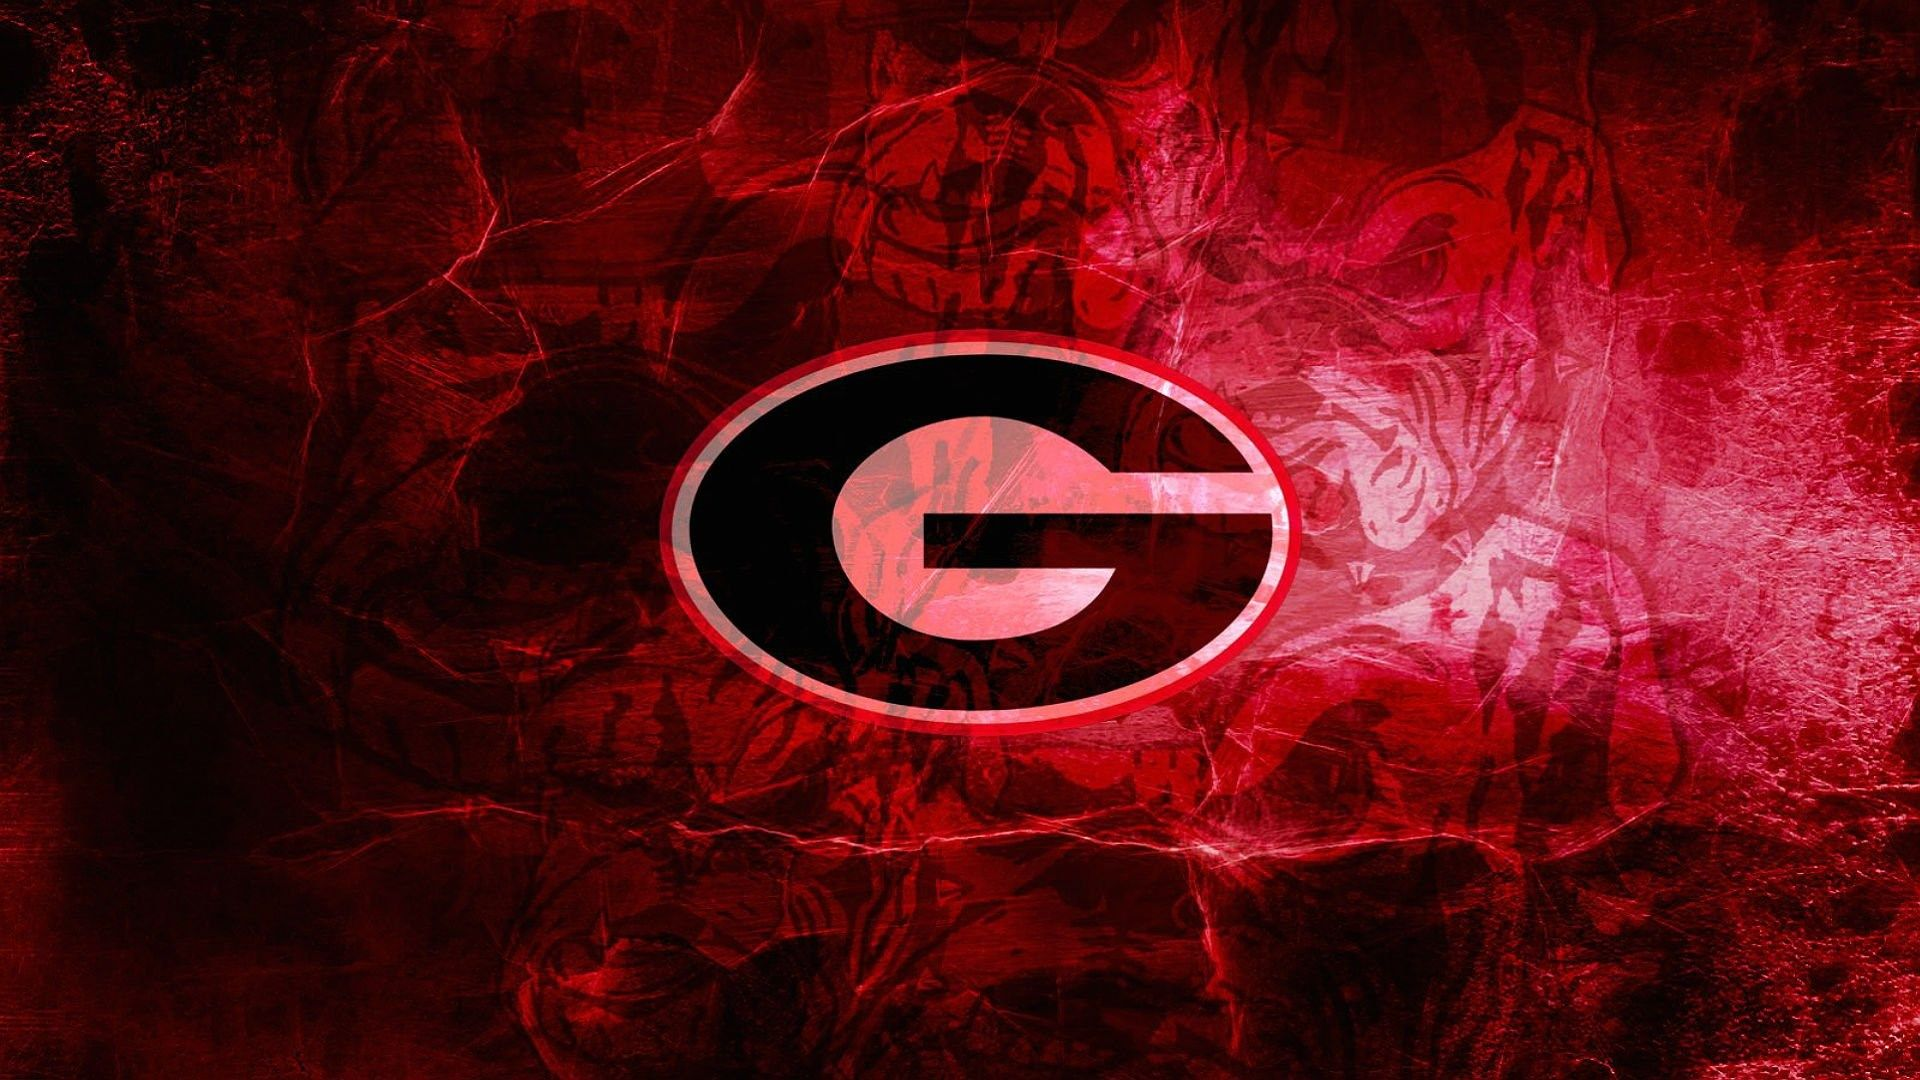 hd uga wallpapers (With images) wallpaper